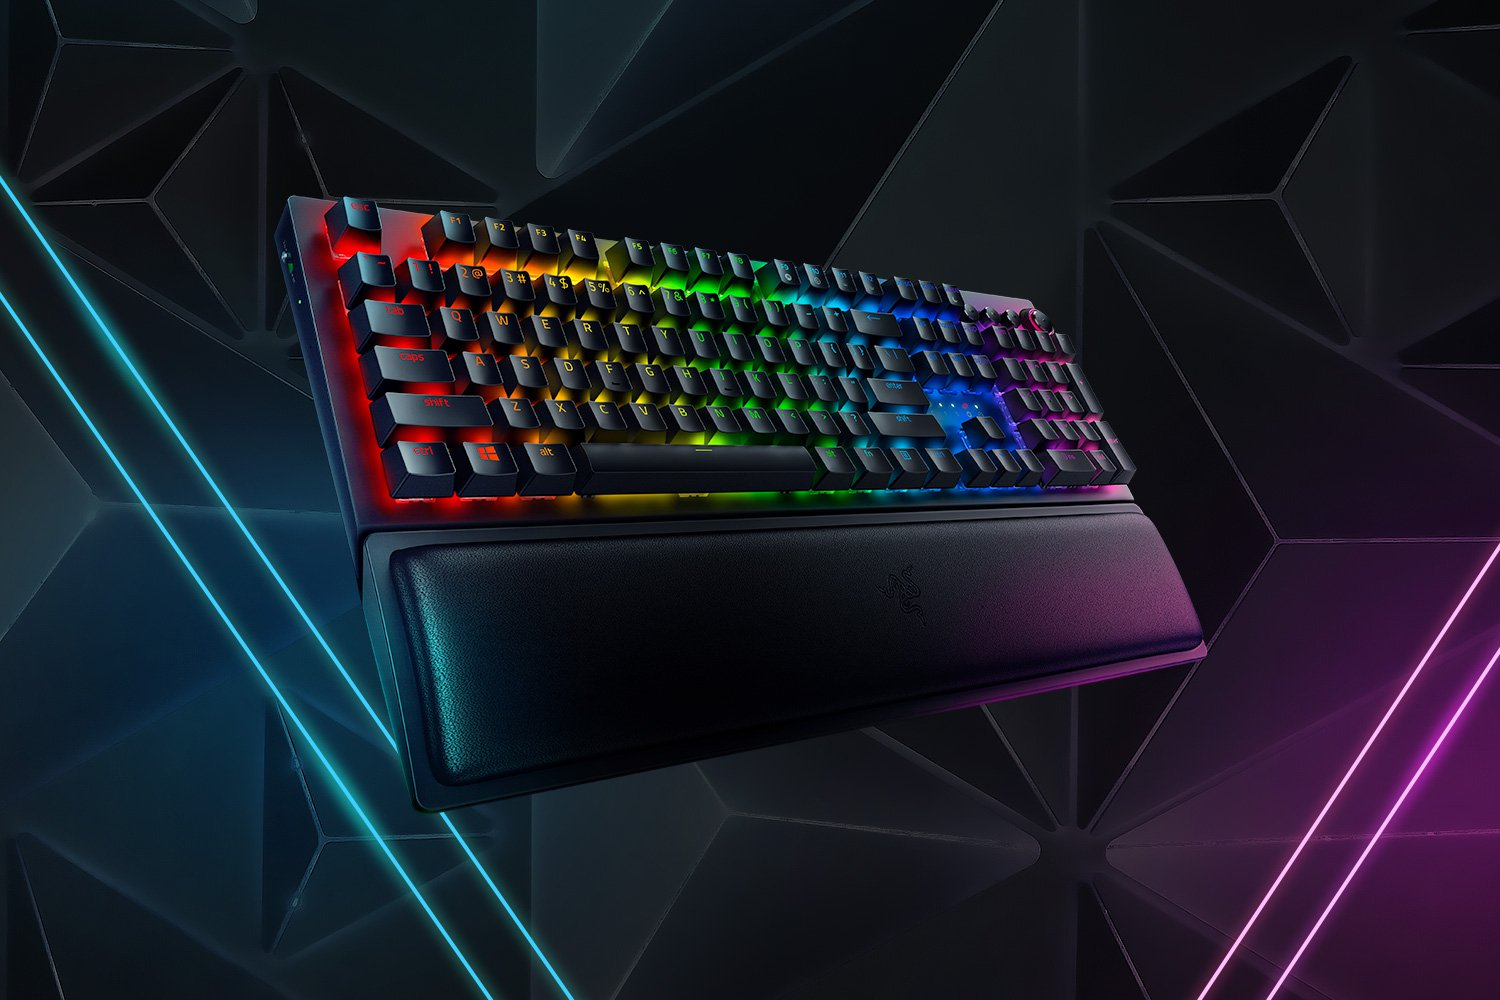 Ask a Medic: Should I use a wrist rest with my keyboard and mouse?